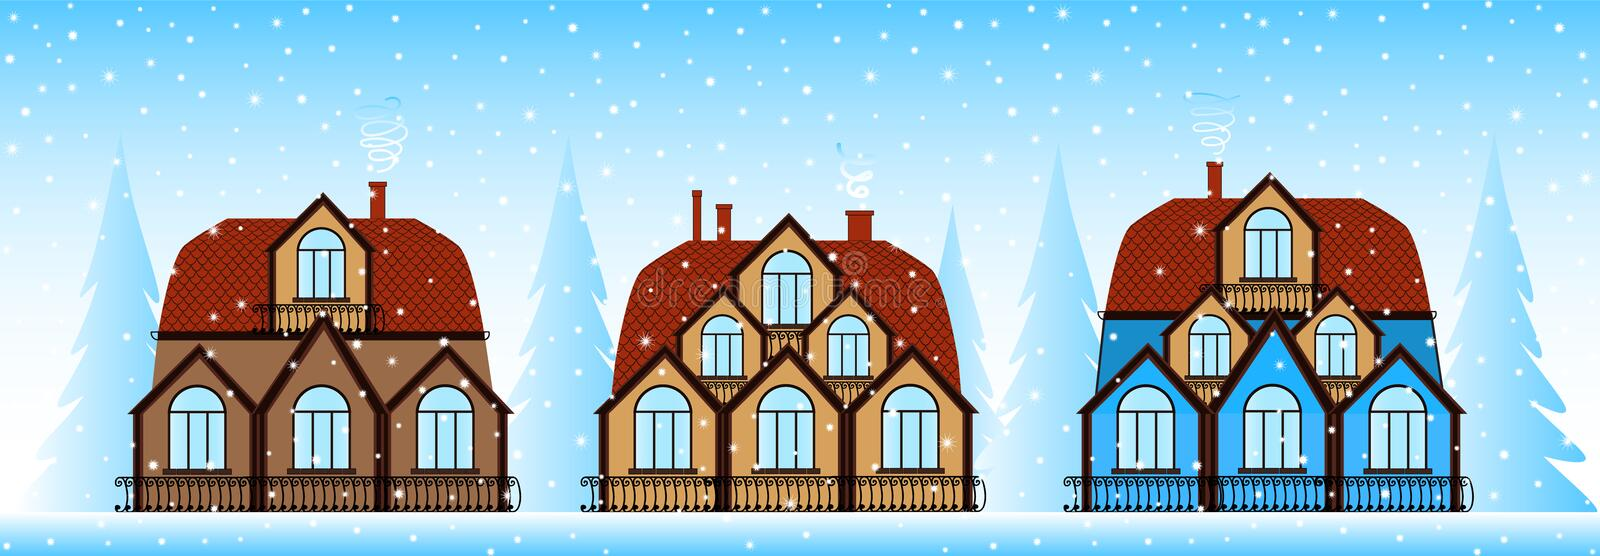 Happy New Year and Merry Christmas vector illustration with beautiful colorful houses at snowy street stock illustration